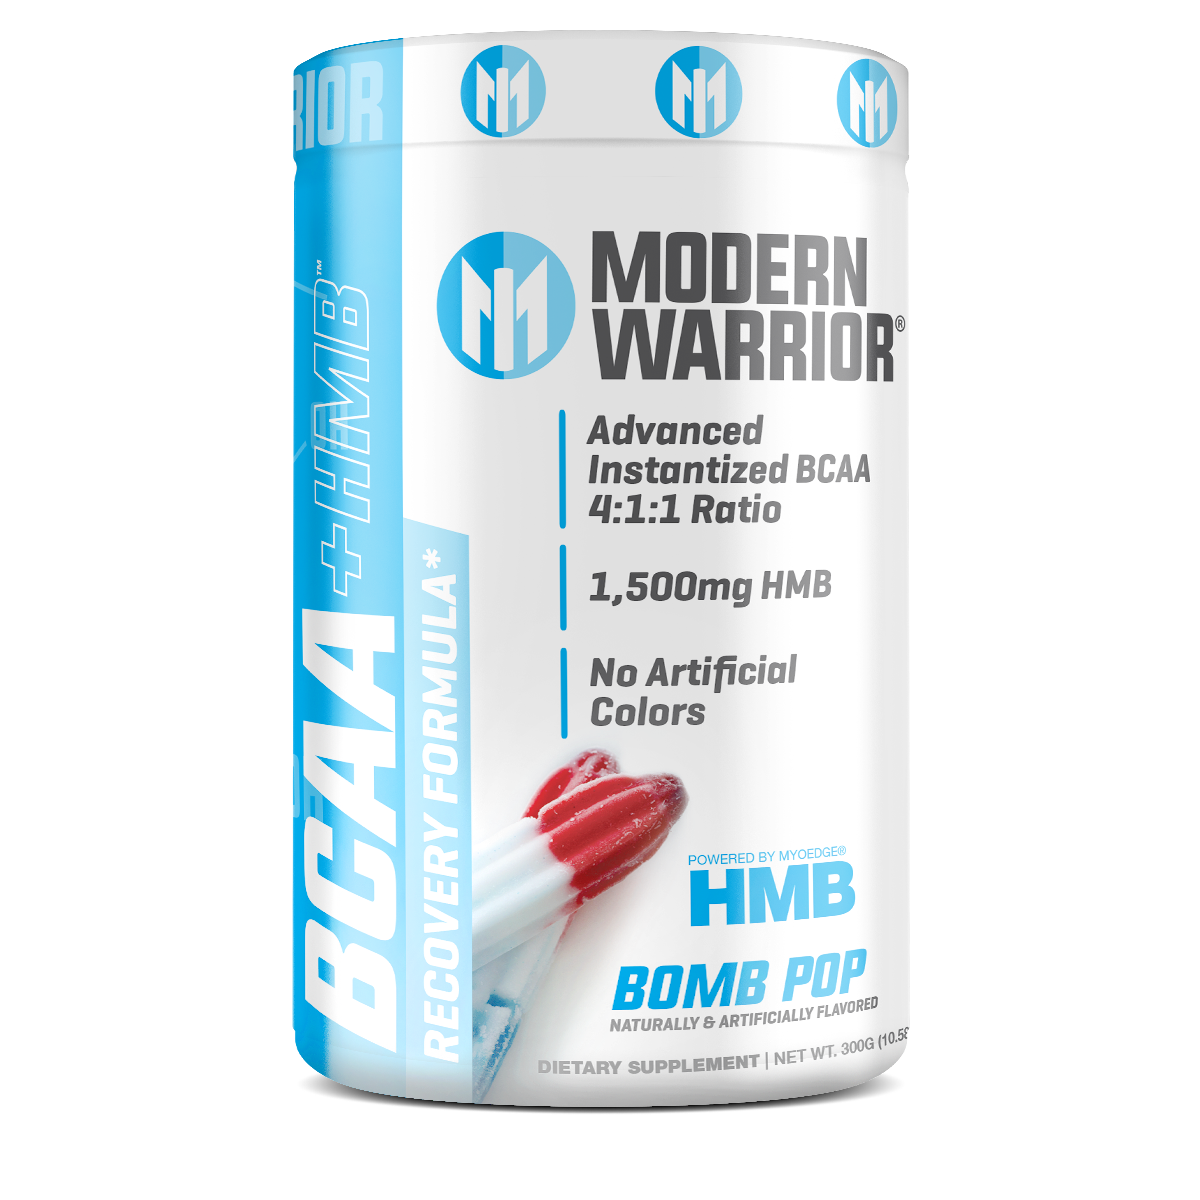 Image of MODERN WARRIOR BCAA Powder with HMB BOMB POP FLAVOR